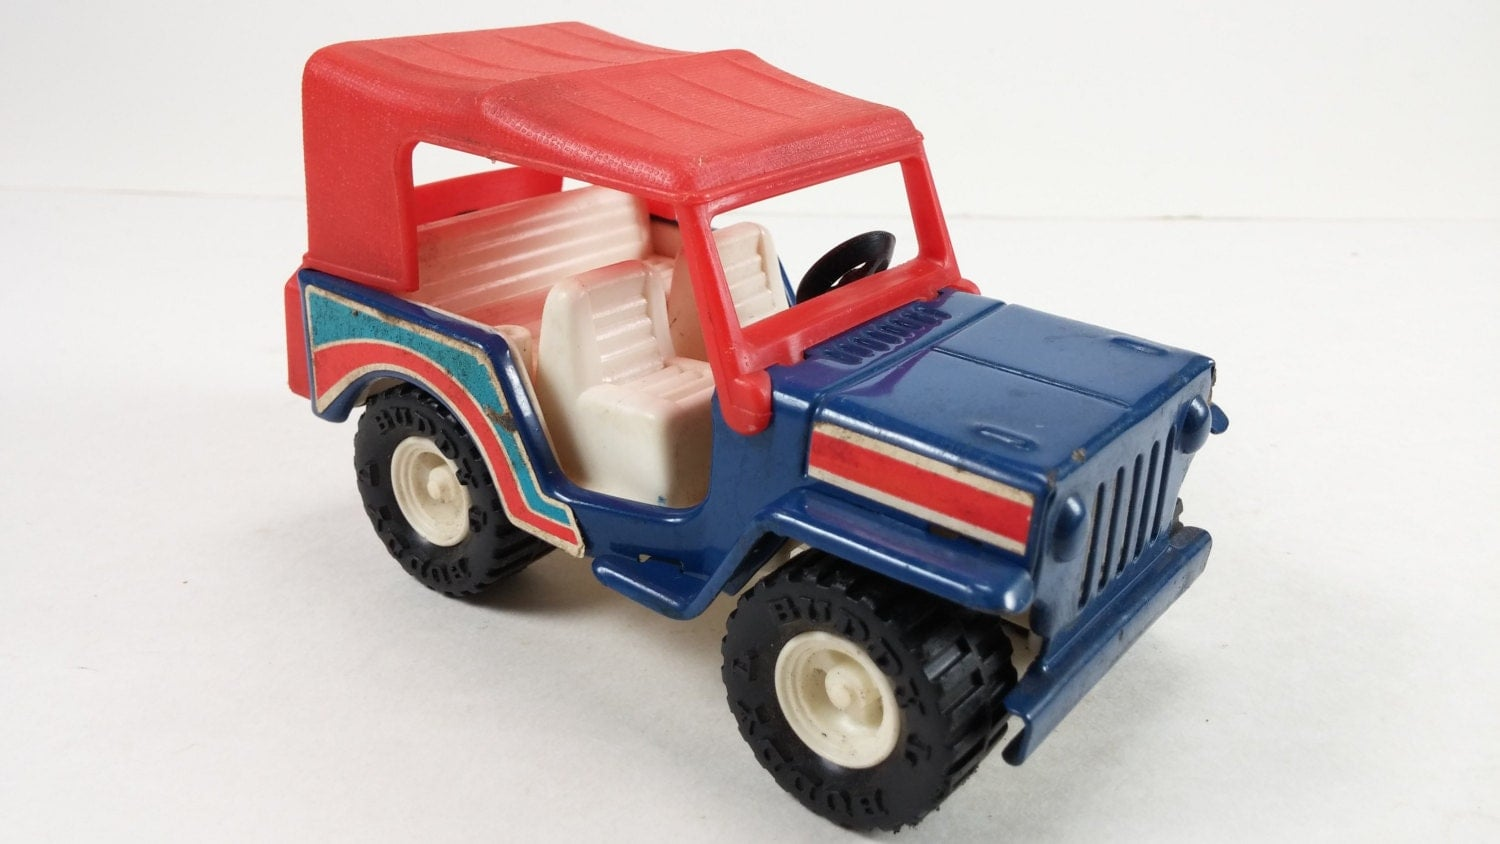 Big Boy Toys Cars : Vintage red and blue toy car jeep big boy